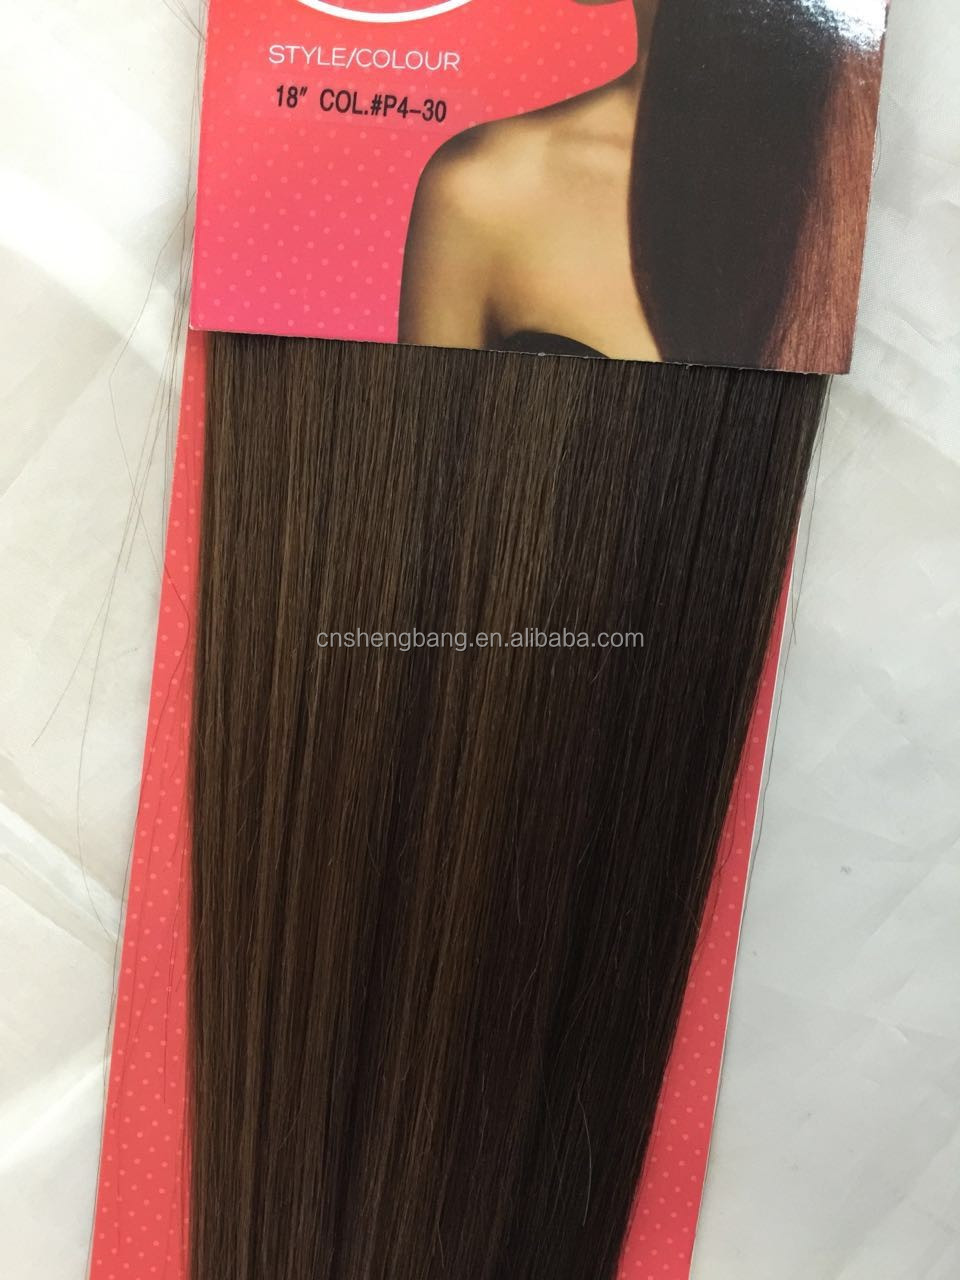 The Look Gold 22 Synthetic hair weft 14inch-22inch,color 613# 4/27,4/30,24/613,99J,530# synthetic hair extensions